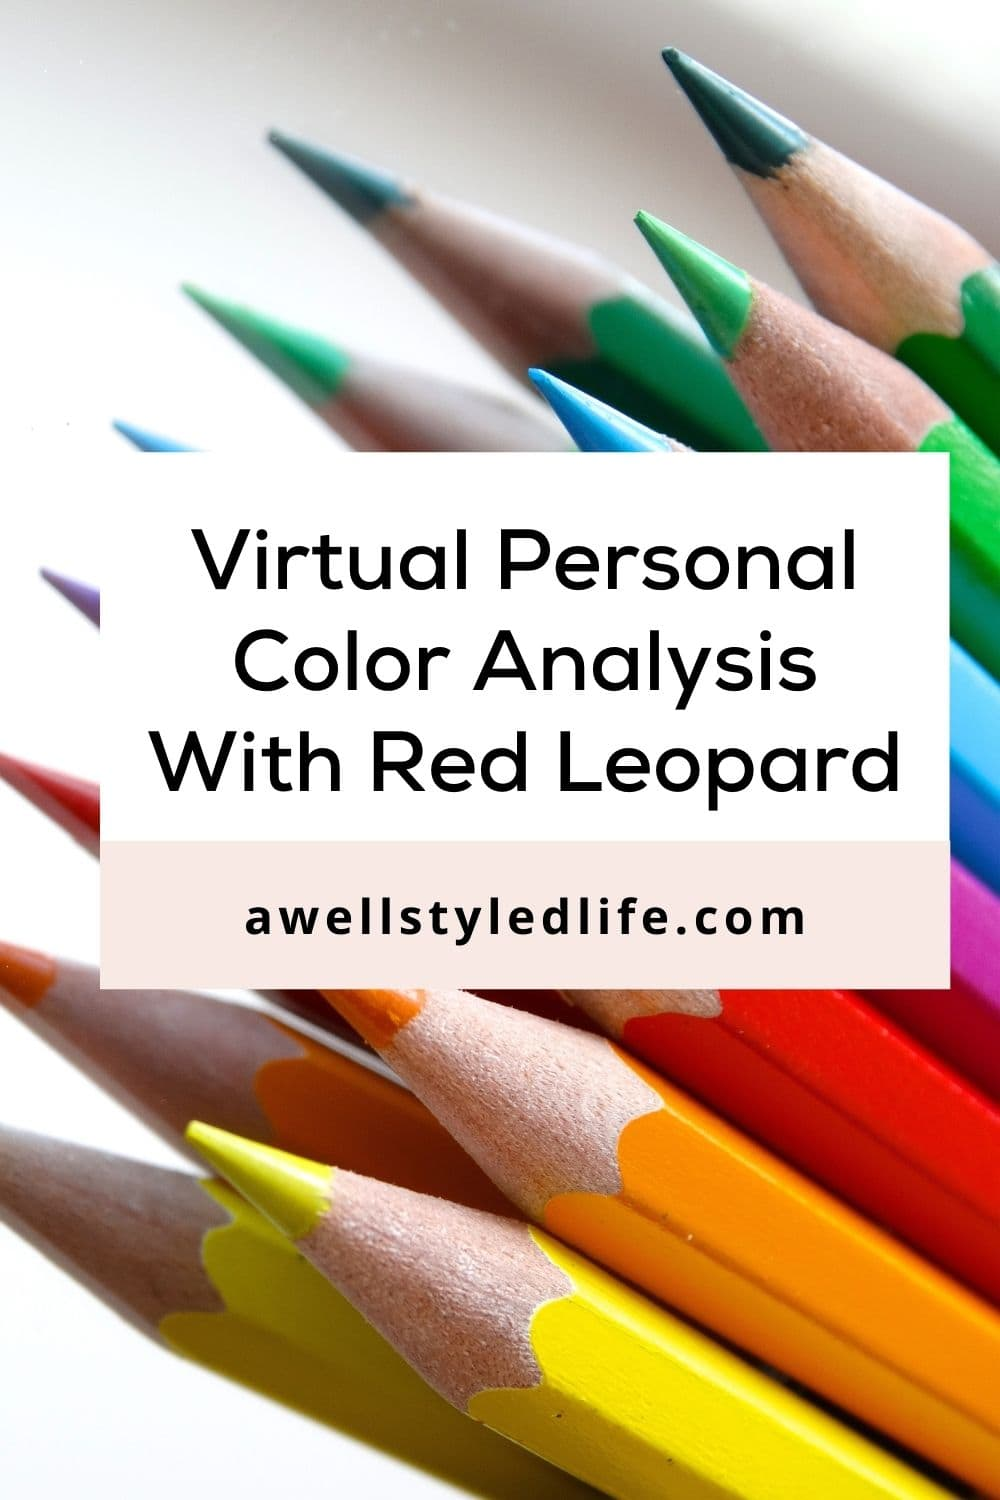 Online Personal Color Analysis With Red Leopard